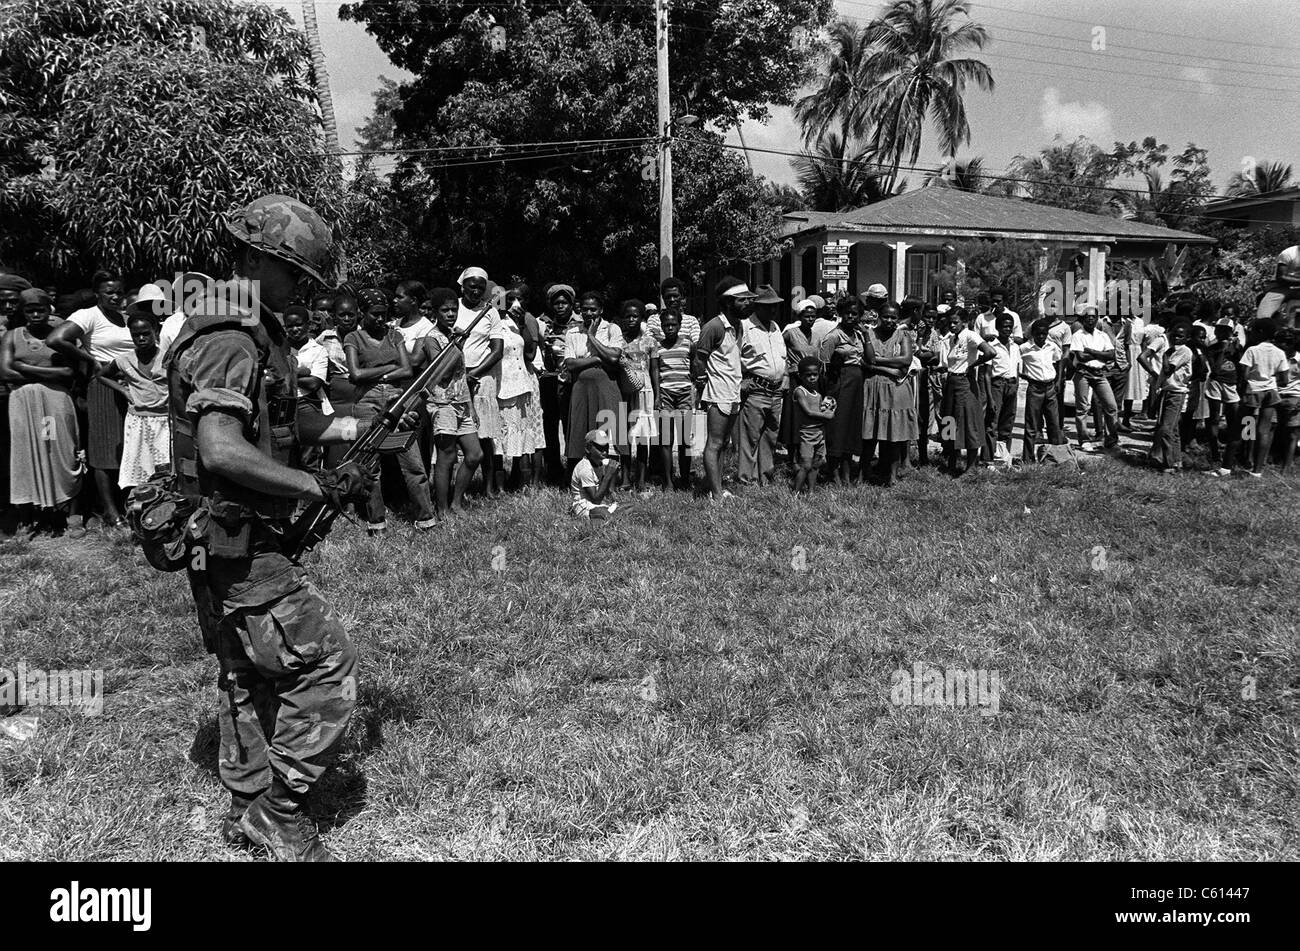 Marine guards civilians after his battalion landed on Grenada during the U.S. invasion. Oct 25-Nov 3 1983. (BSLOC - Stock Image